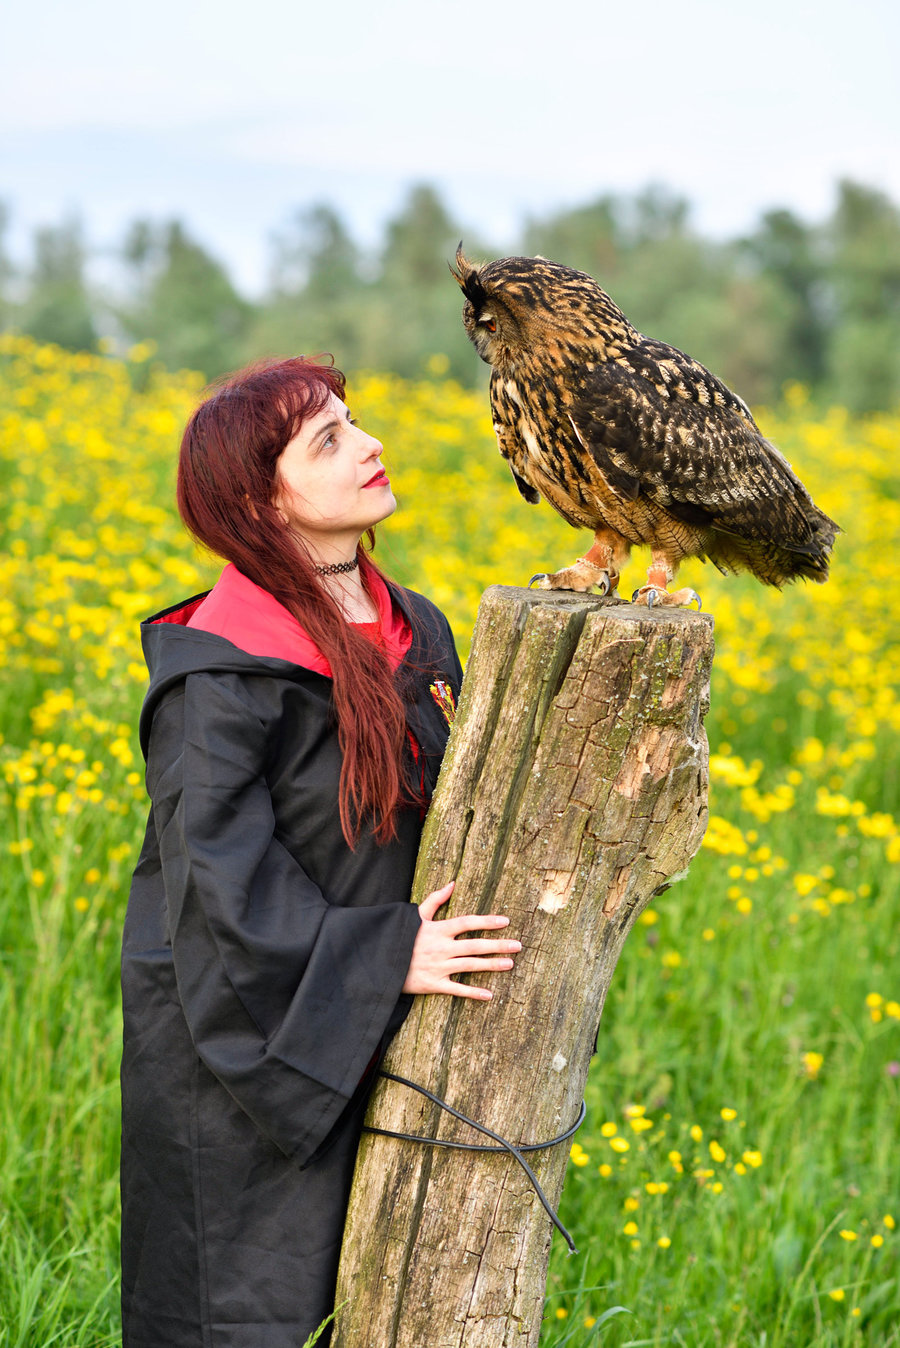 Zara Liore the Gryffindor Hermione at Hogwarts with owl, Bo / Photography by Michel Geven, Model Zara Liore, Makeup by Zara Liore / Uploaded 21st May 2018 @ 10:30 PM